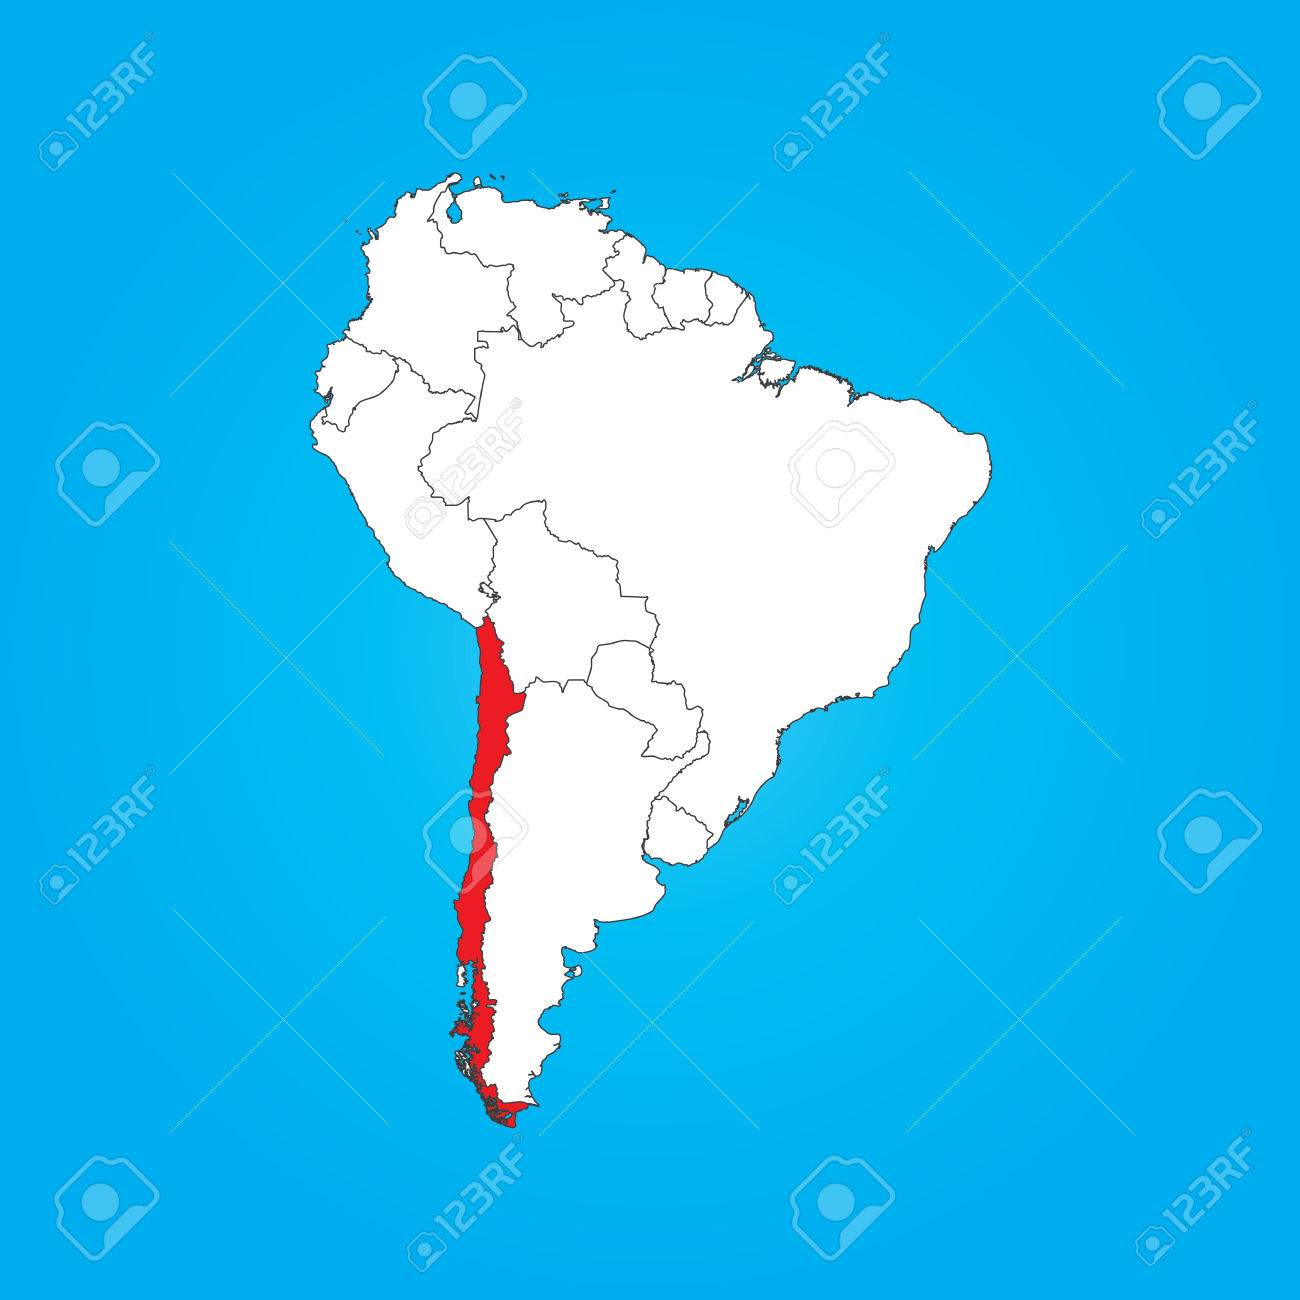 A Map Of South America With A Selected Country Of Chile Royalty Free